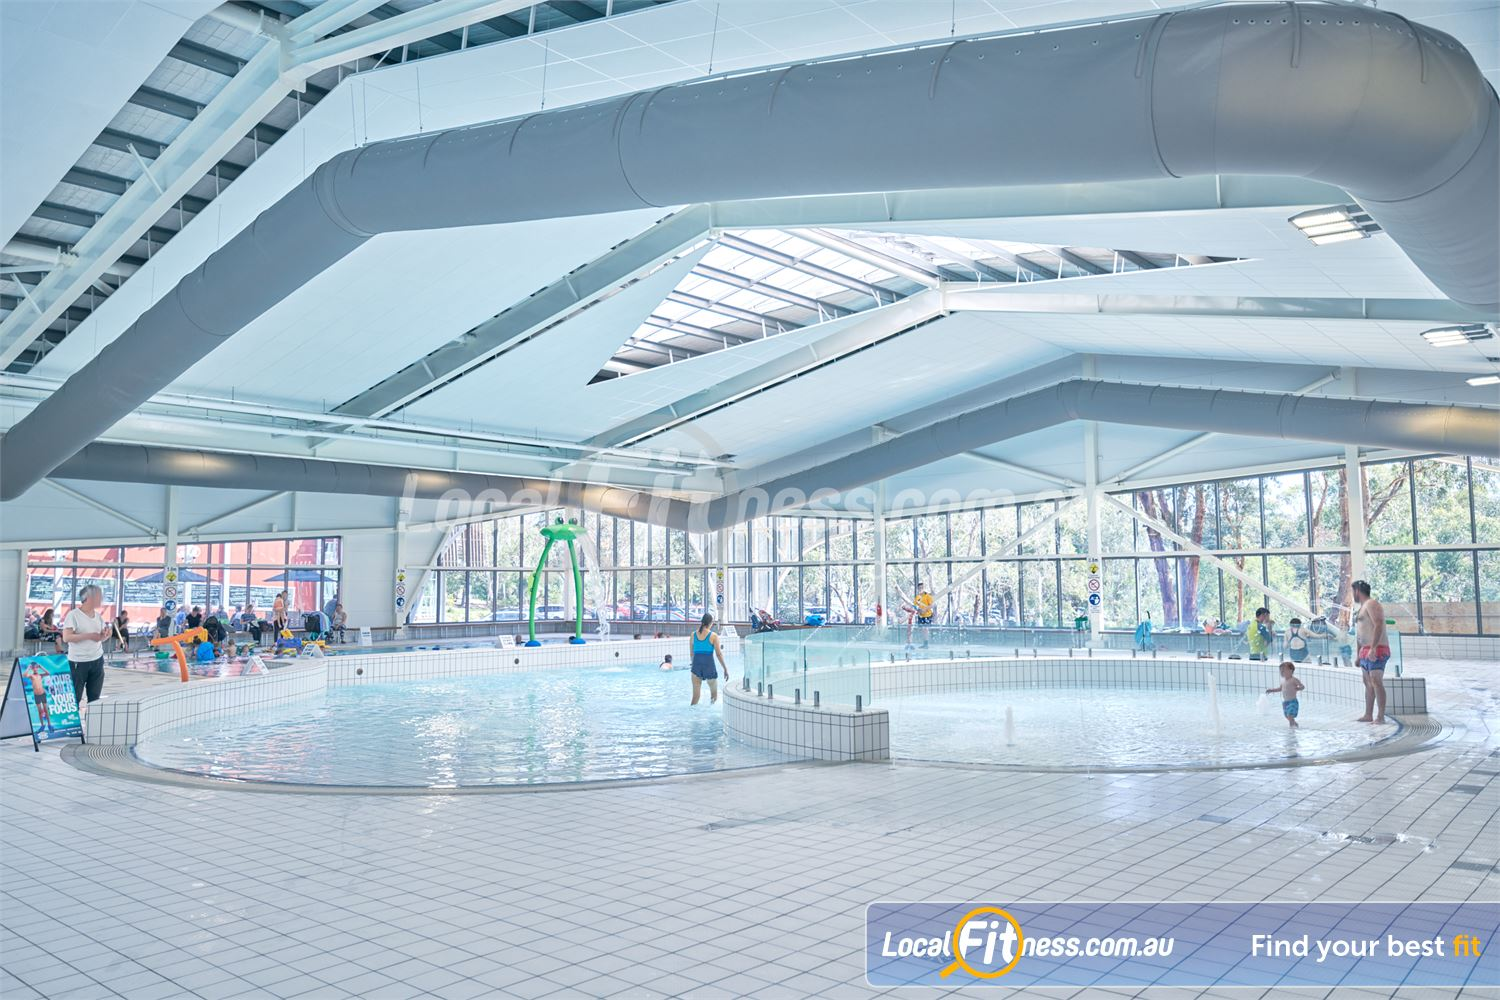 Eltham Leisure Centre Eltham The dedicated learn to swim pool, play pool and toddler pool for the kids.